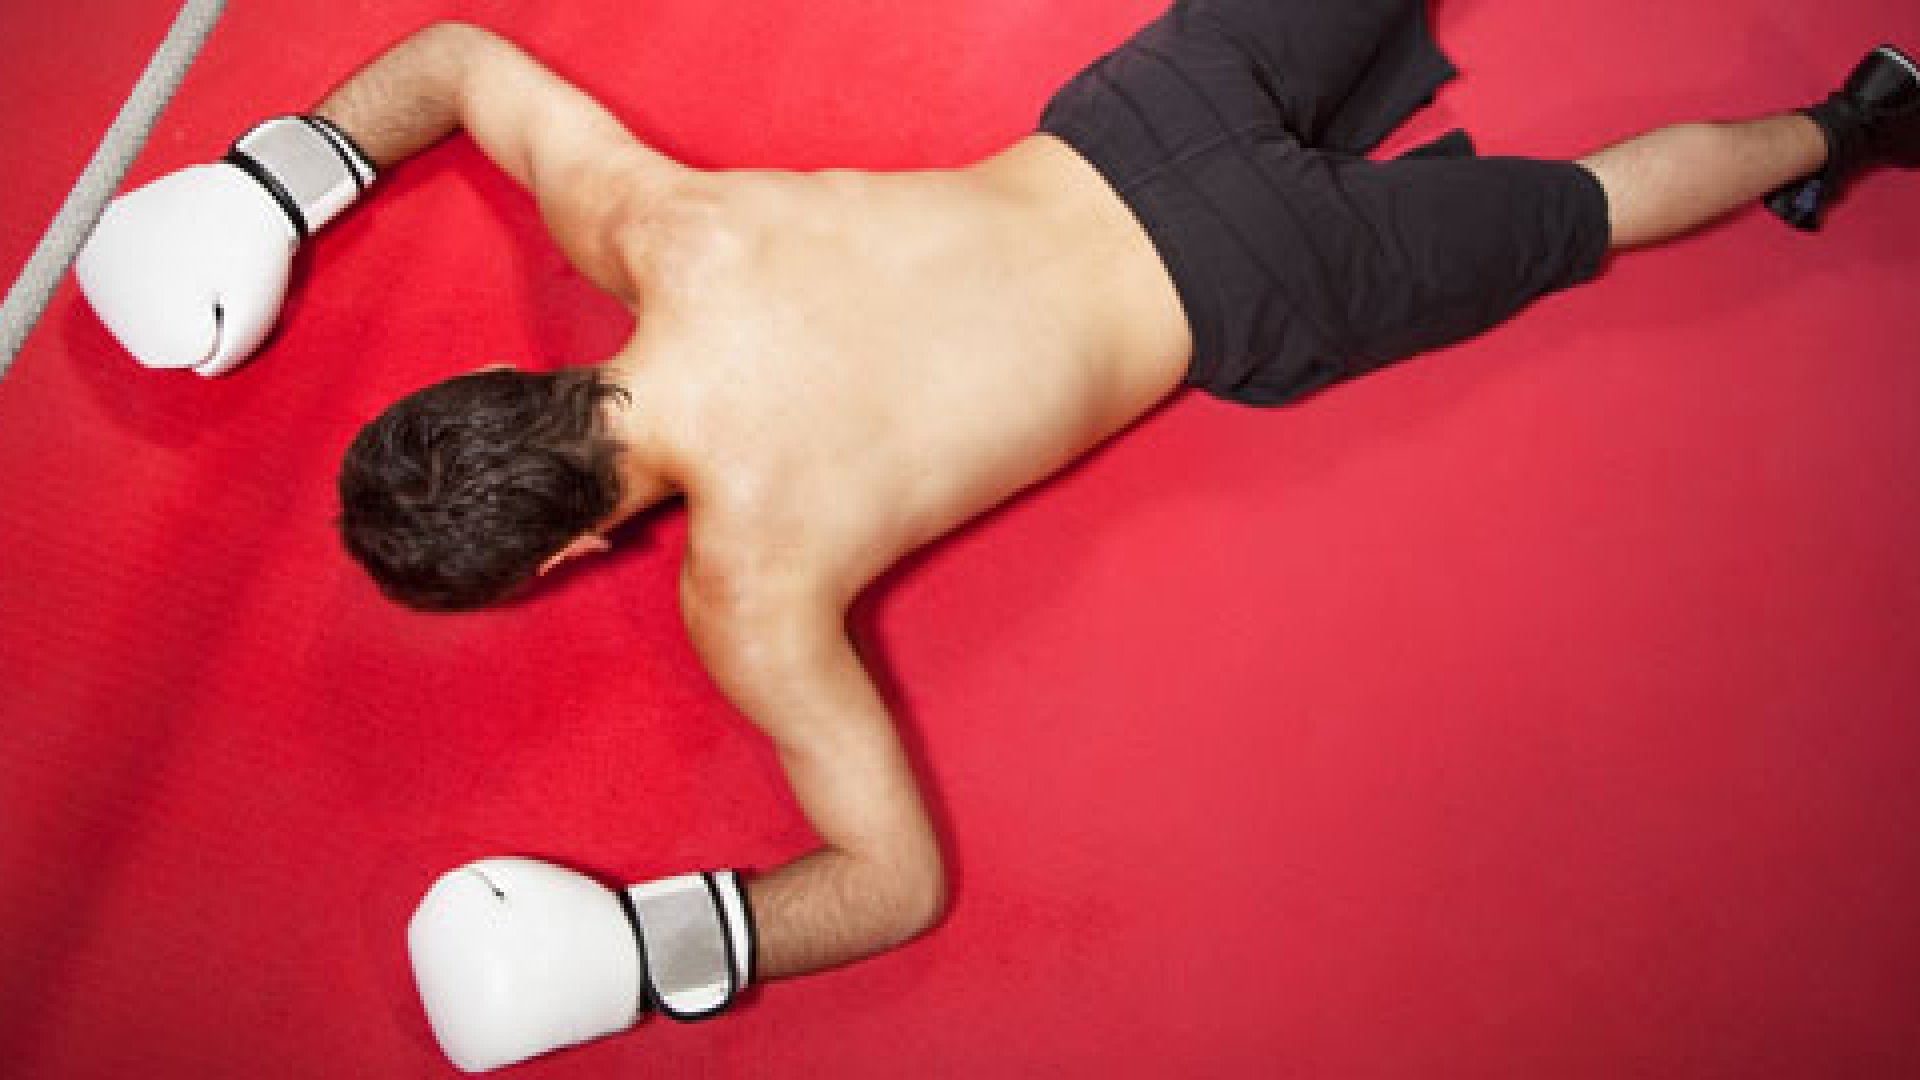 Epic Fail: 3 Ways to Come Back Stronger